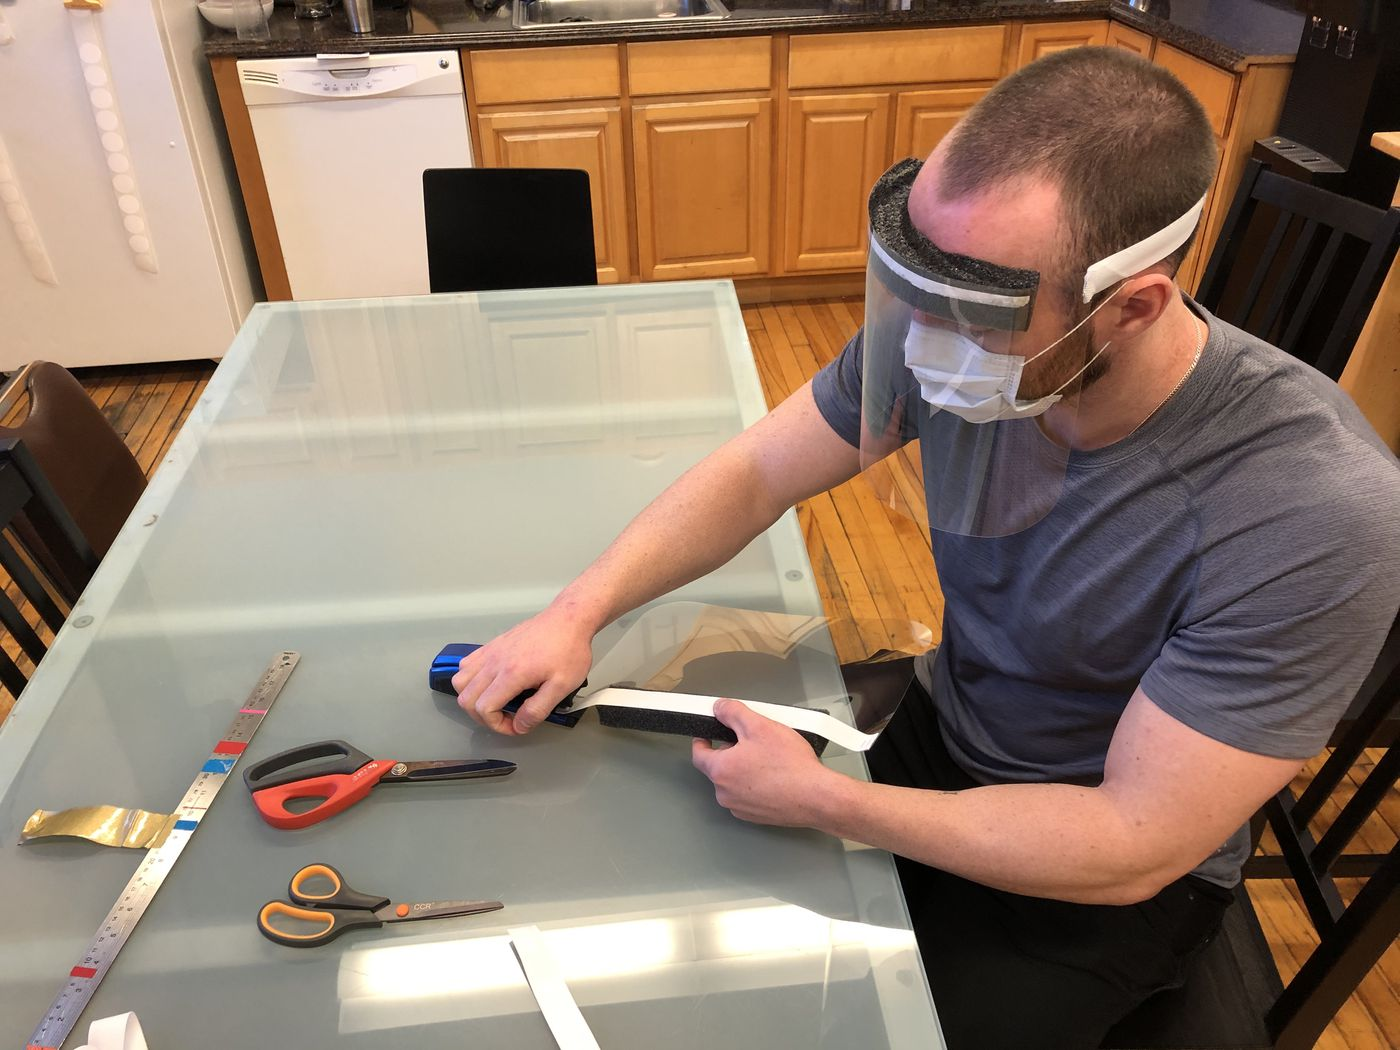 Mobile Outfitters of Manayunk is a business pivoting to making masks instead of cellphone cases and accessories.